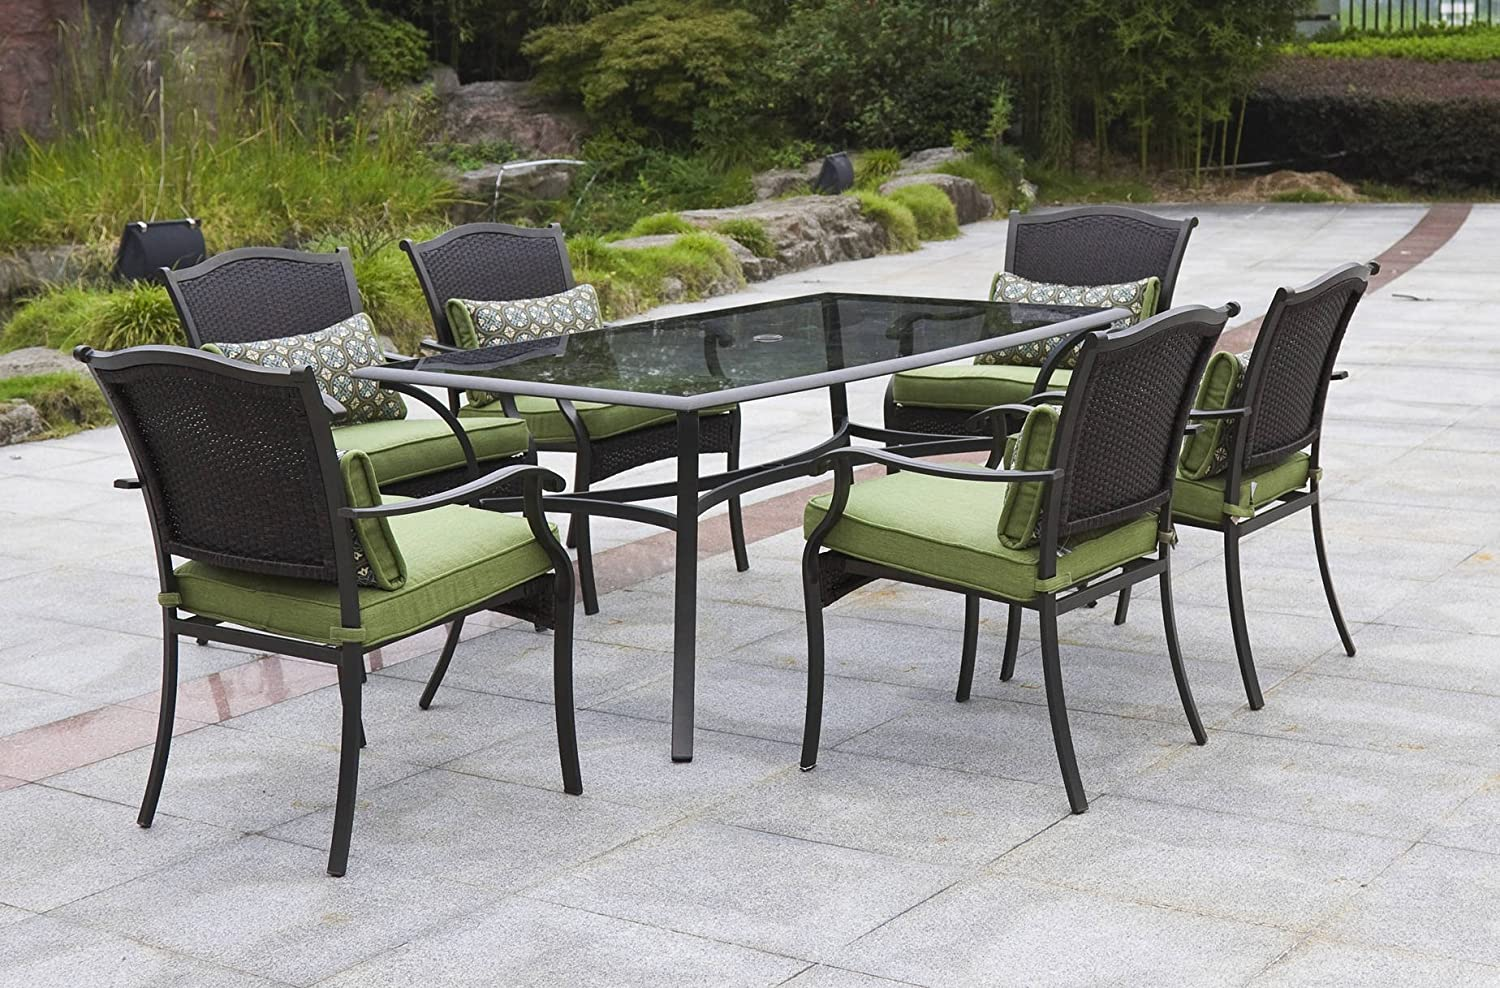 bella weather all patio set seats product dining cfm wicker hayneedle piece living belham master